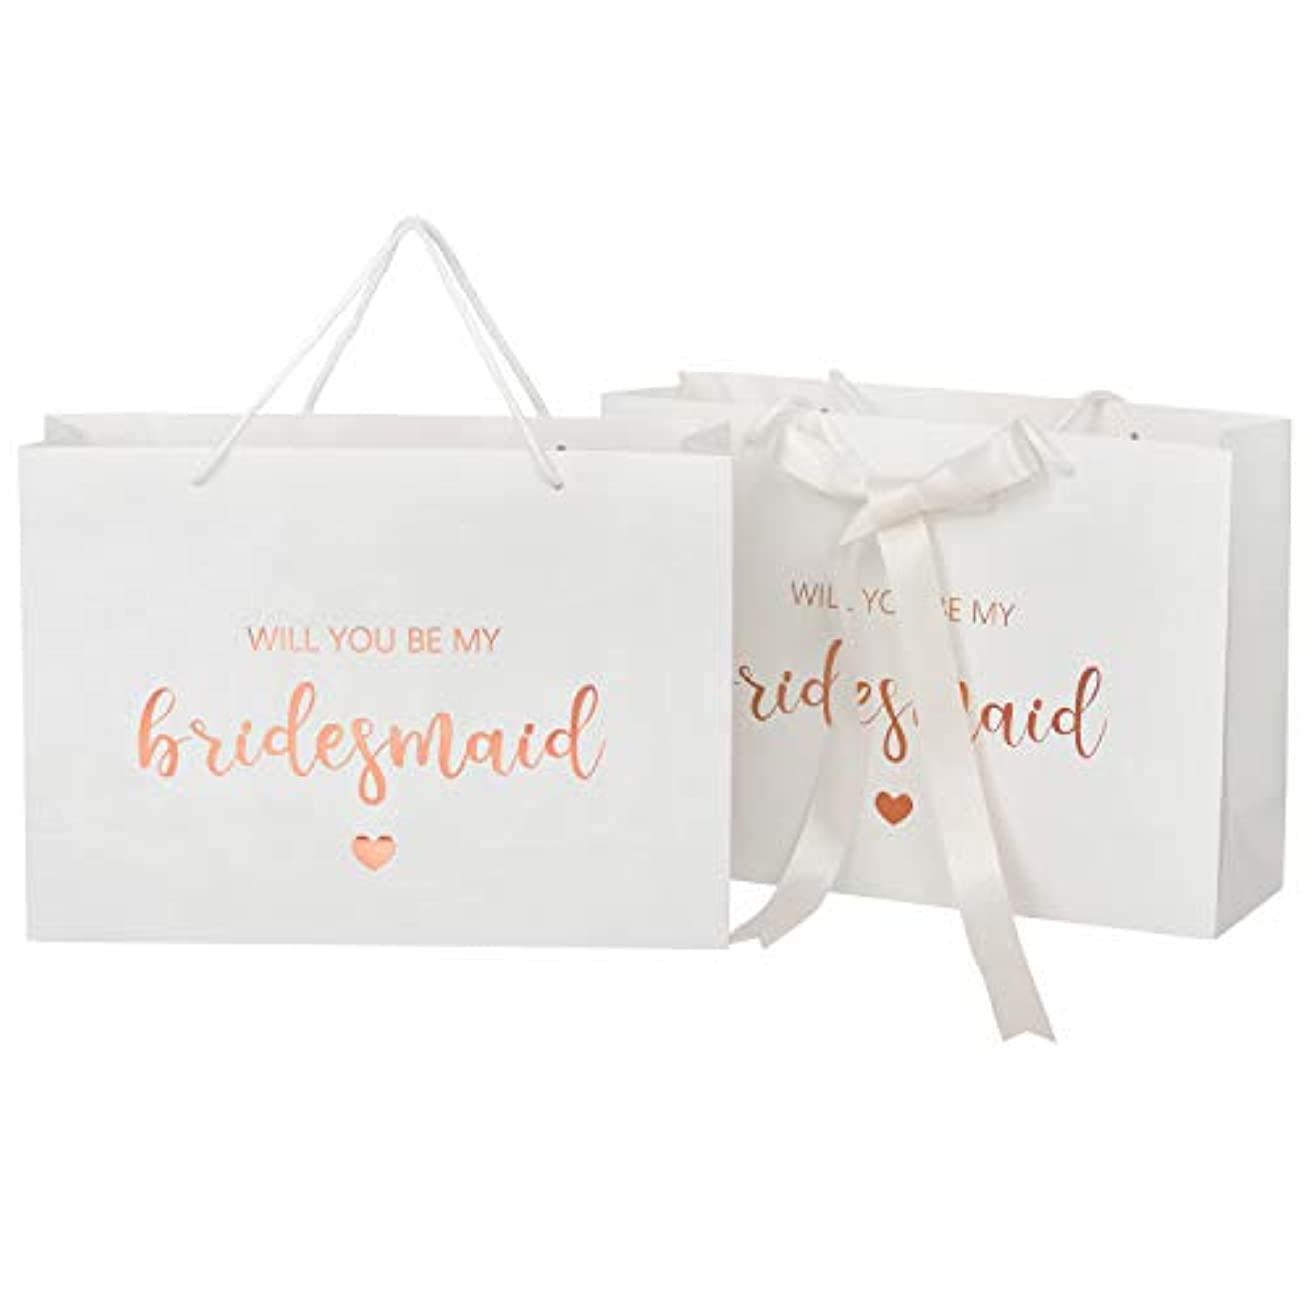 Crisky Will You Be My Bridesmaid Gift Bags, Bridesmaid Proposal Bags Bridesmaid Gift Rose Gold, 6 Pack